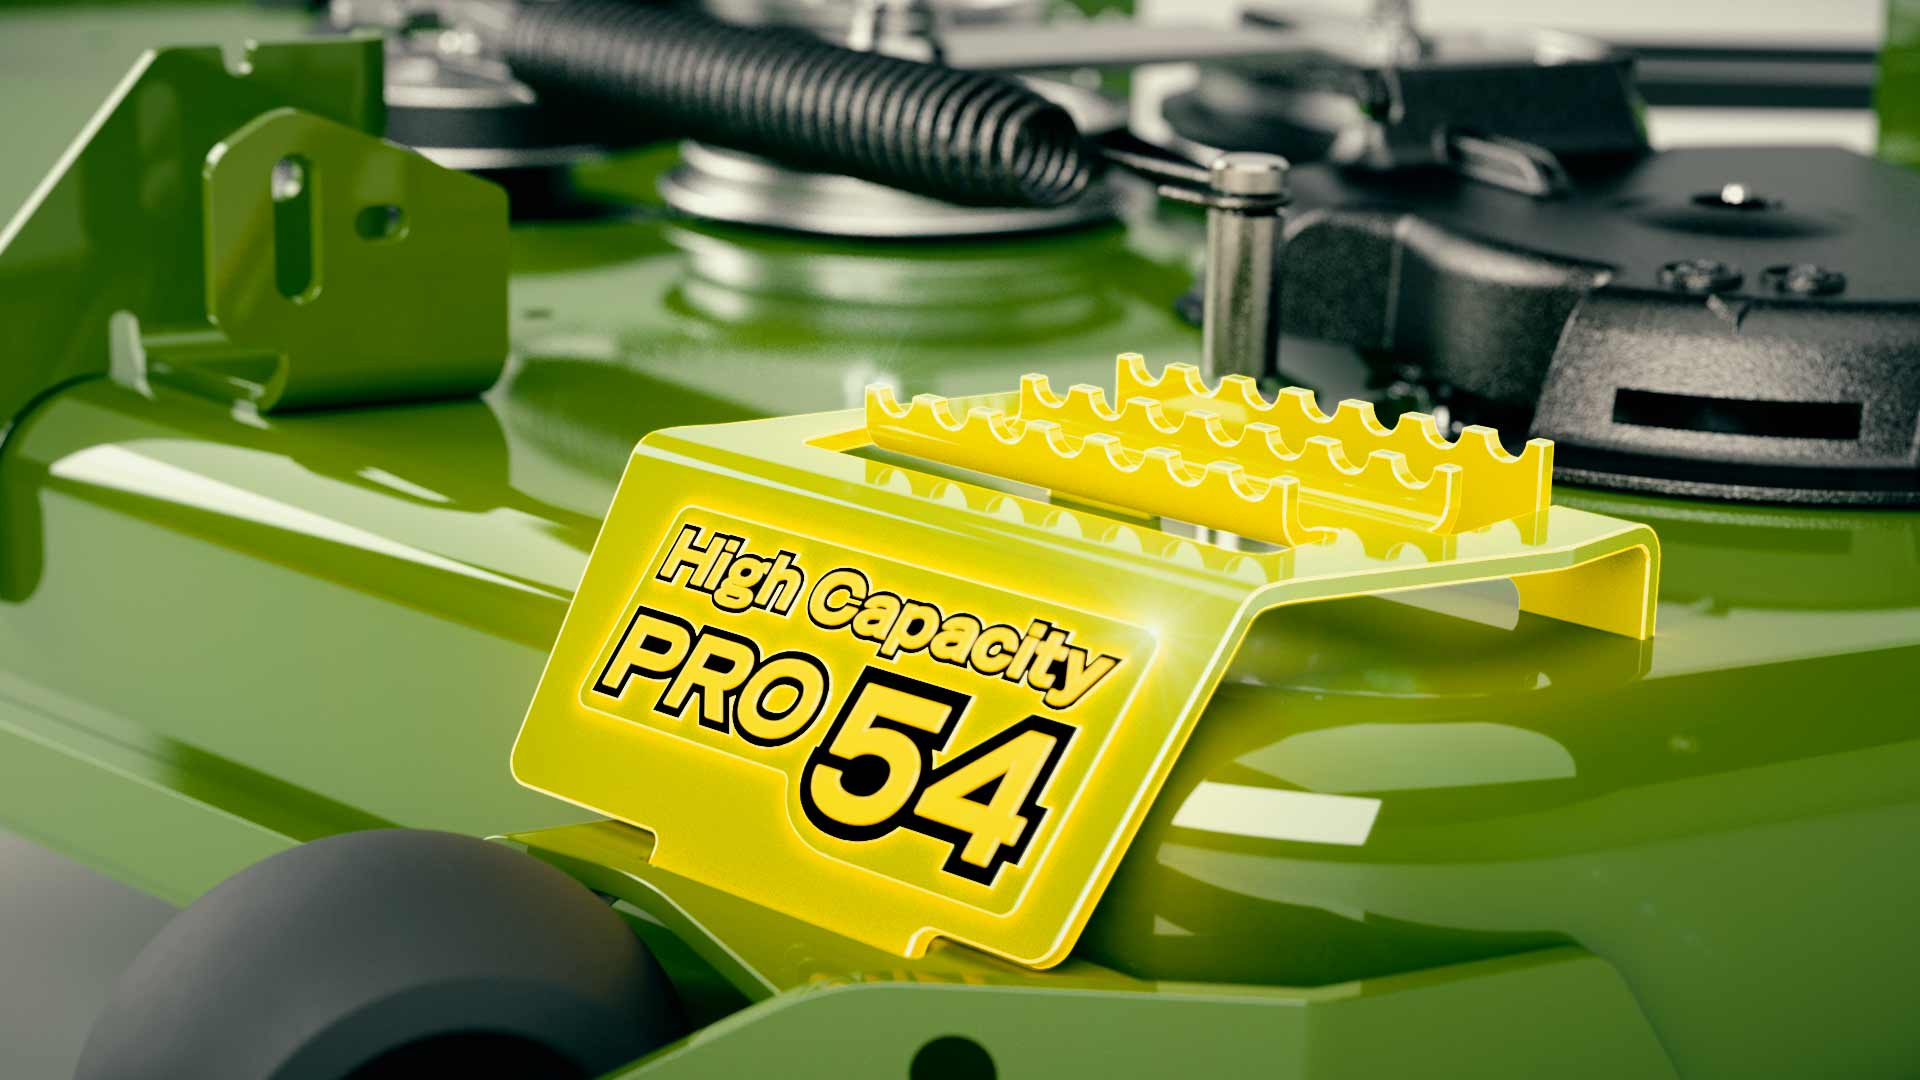 Product animation still of PRO mower deck with green welded step